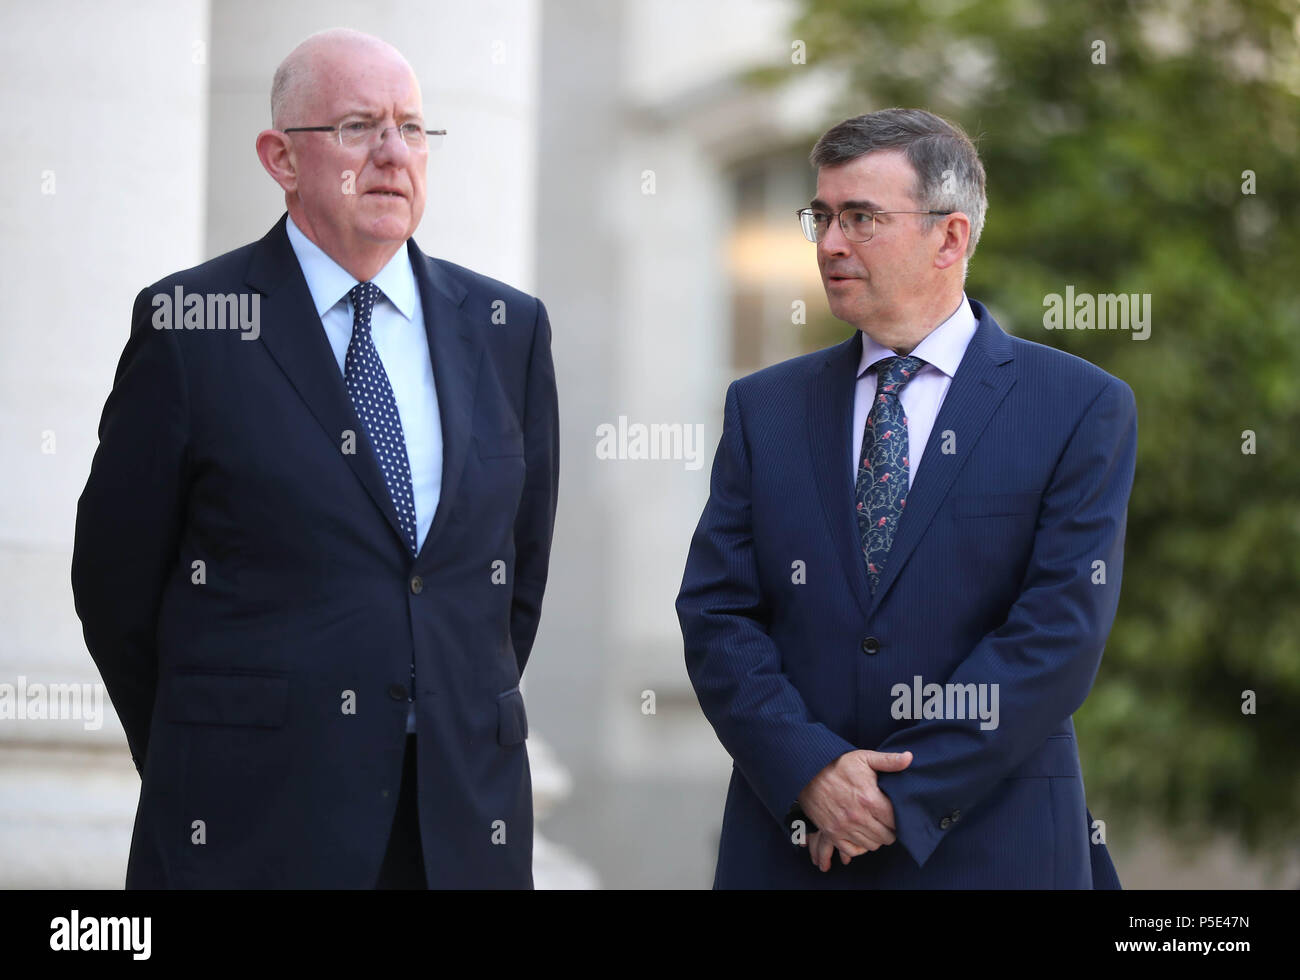 Justice Minister Charles Flannigan (left) at the announcement of Drew Harris (right) as the new Garda Commissioner at the government buildings in Dublin. - Stock Image